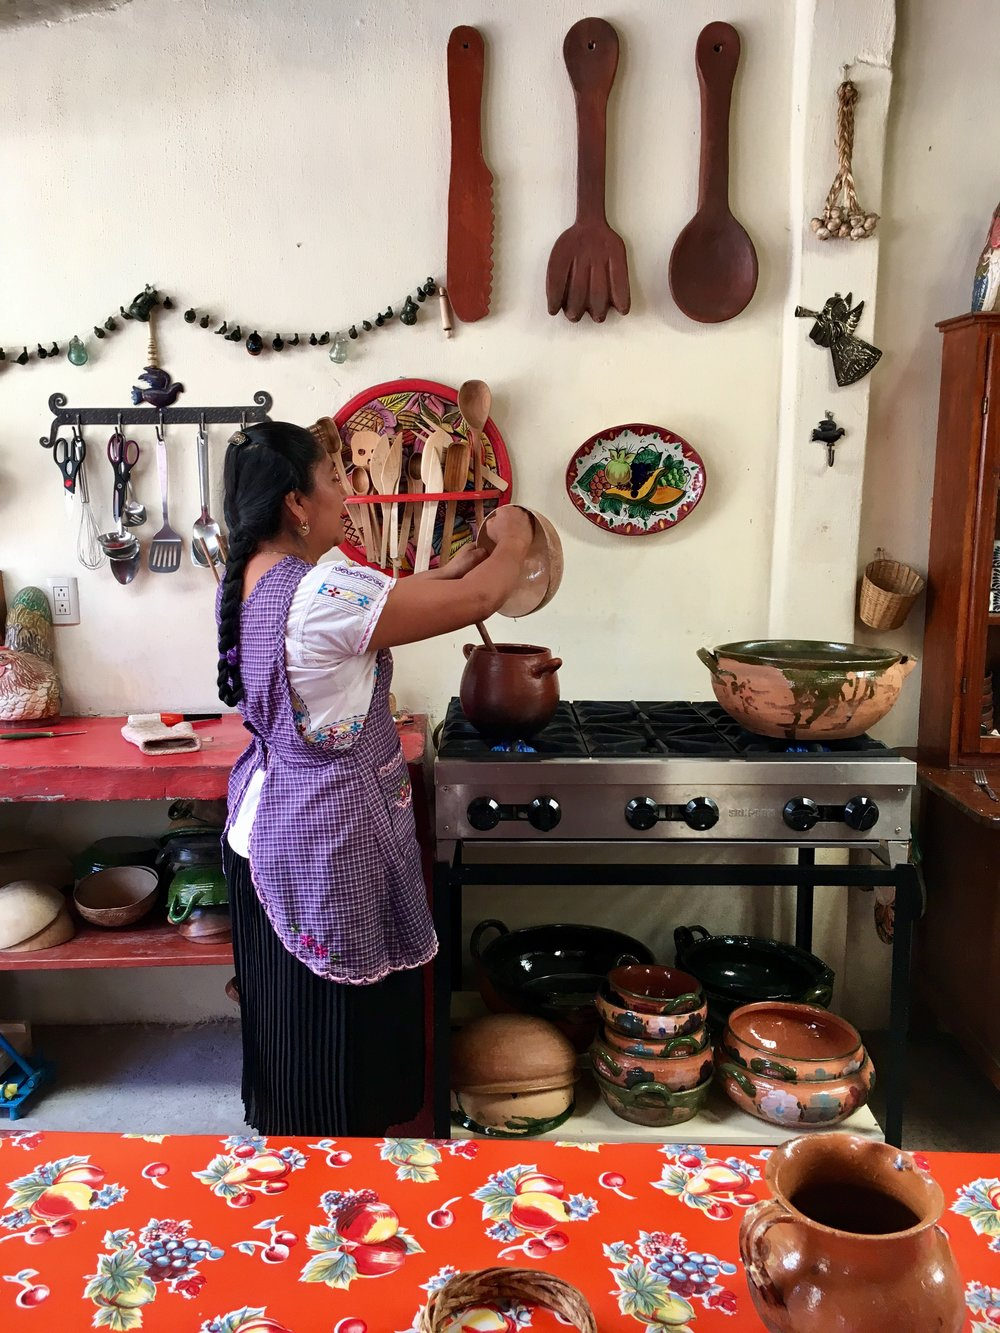 Reyna preparing nicuatole, a slightly sweet corn thickened dessert.